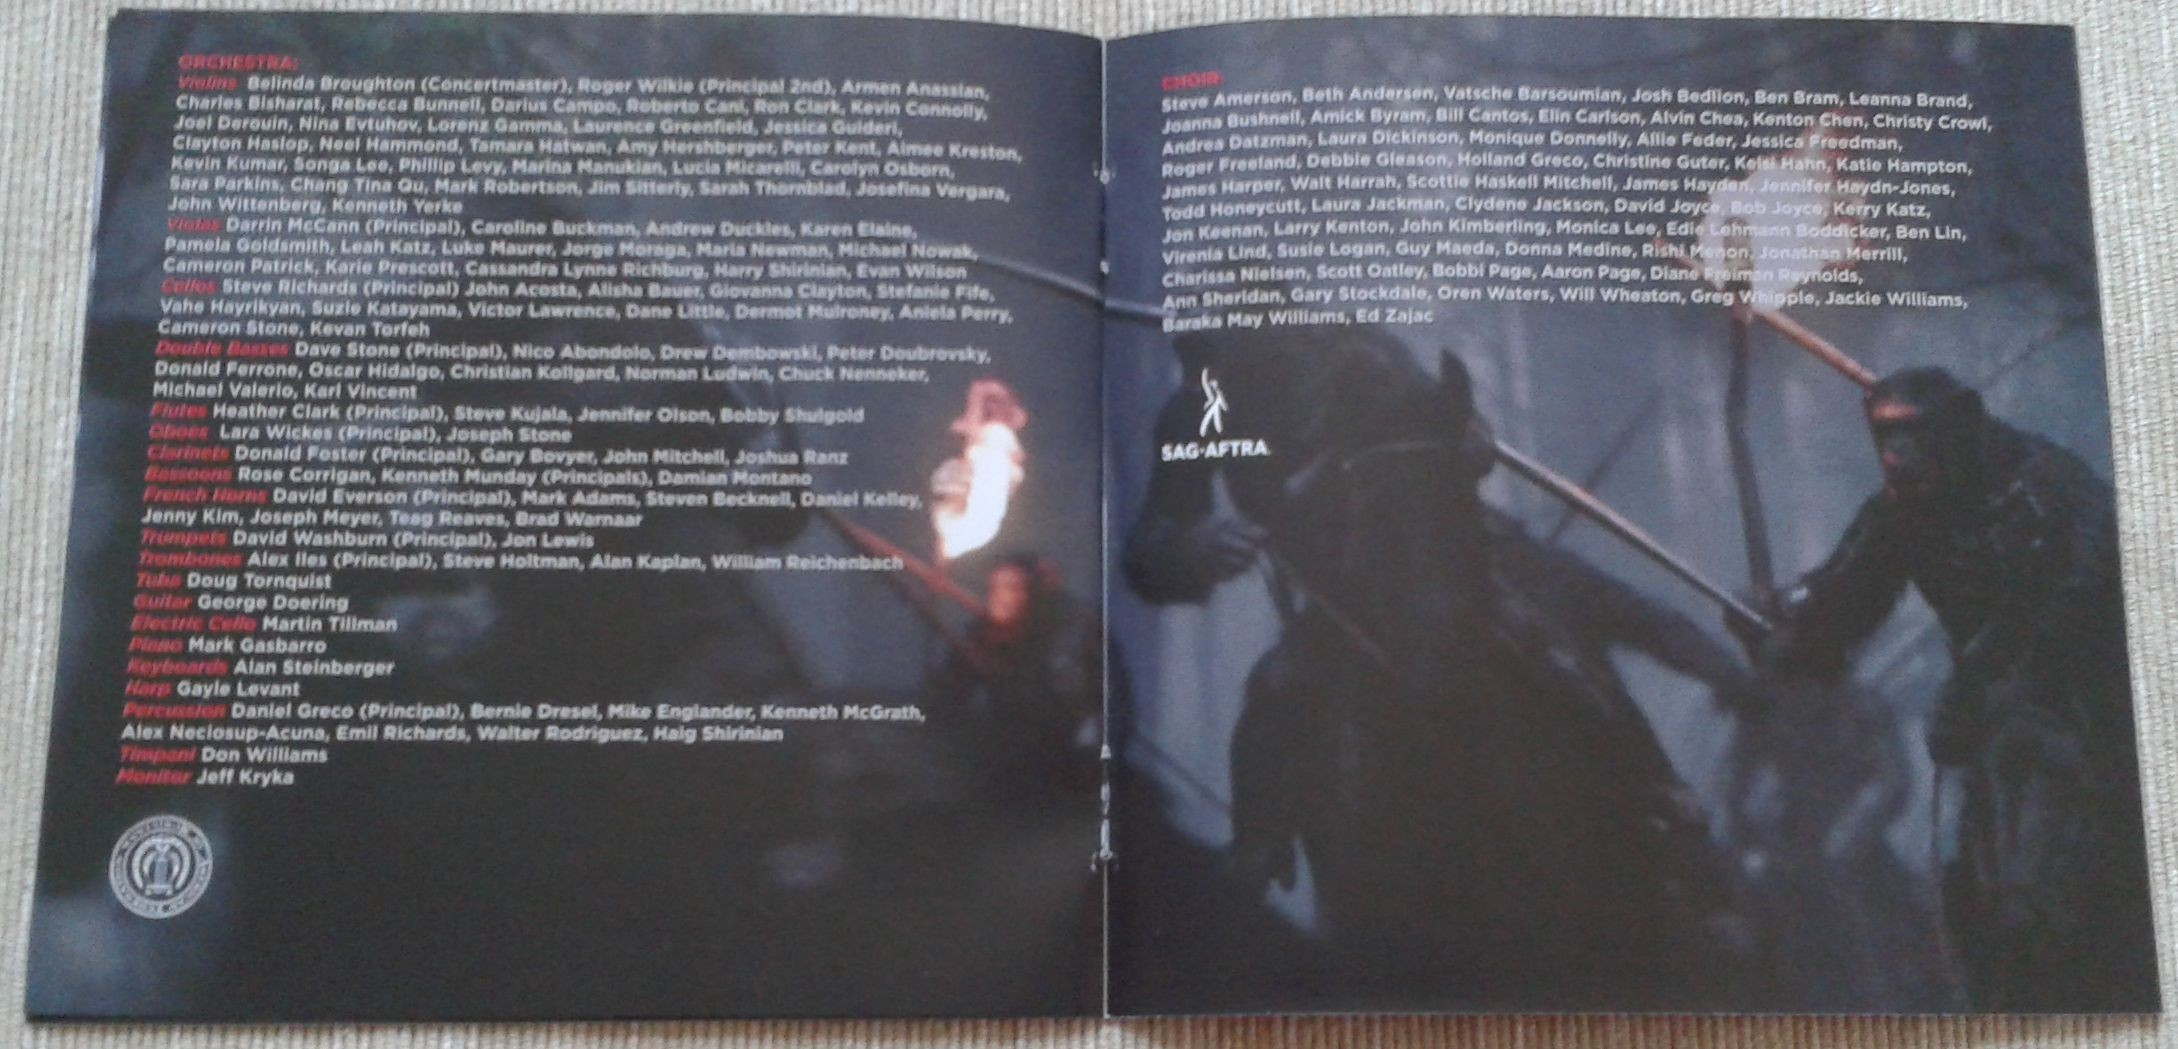 9. War for the Planet of the Apes booklet 5.jpg